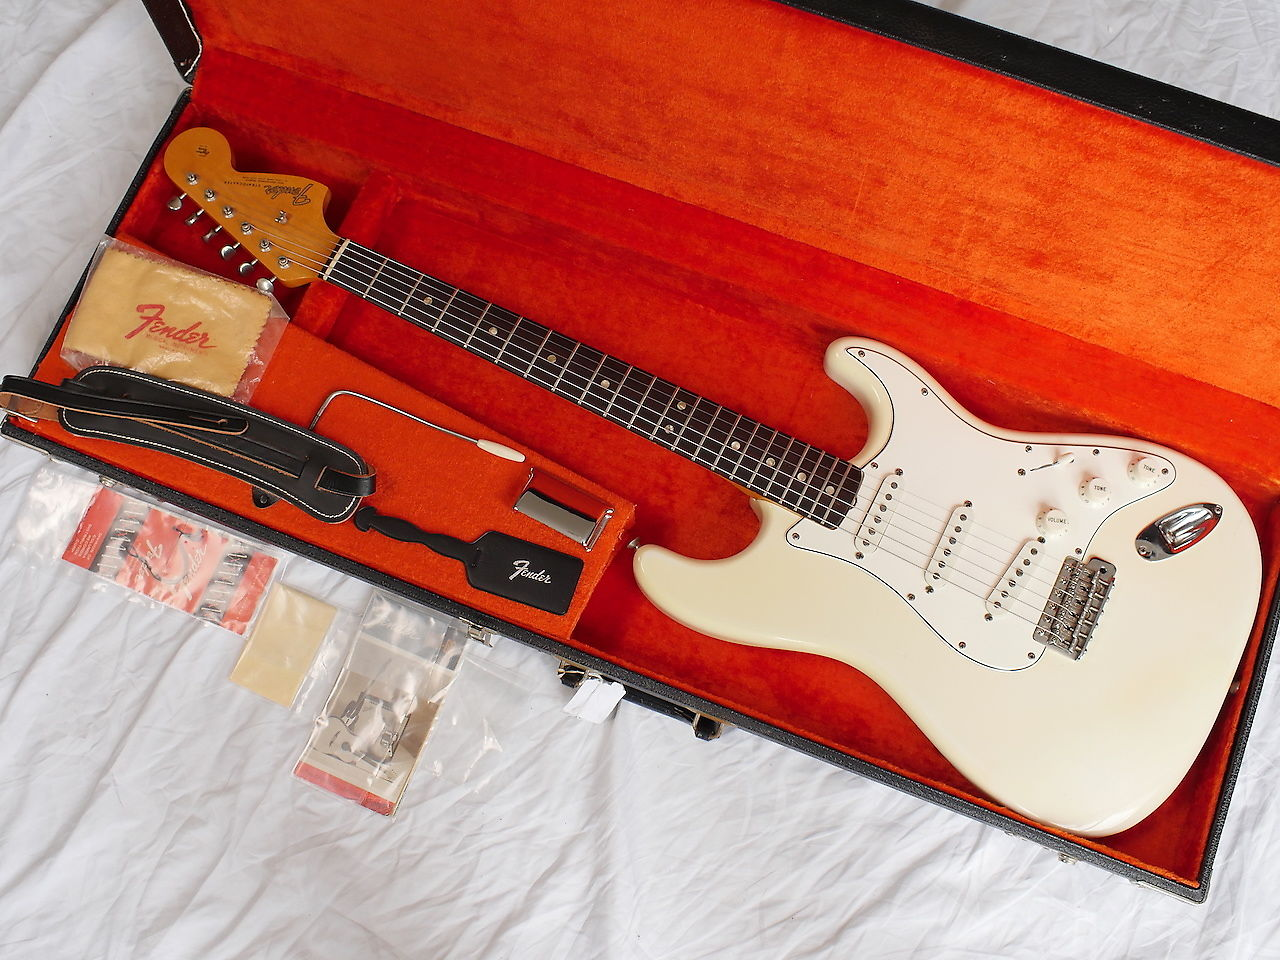 1966 FENDER STRATOCASTER OLYMPIC WHITE MINT